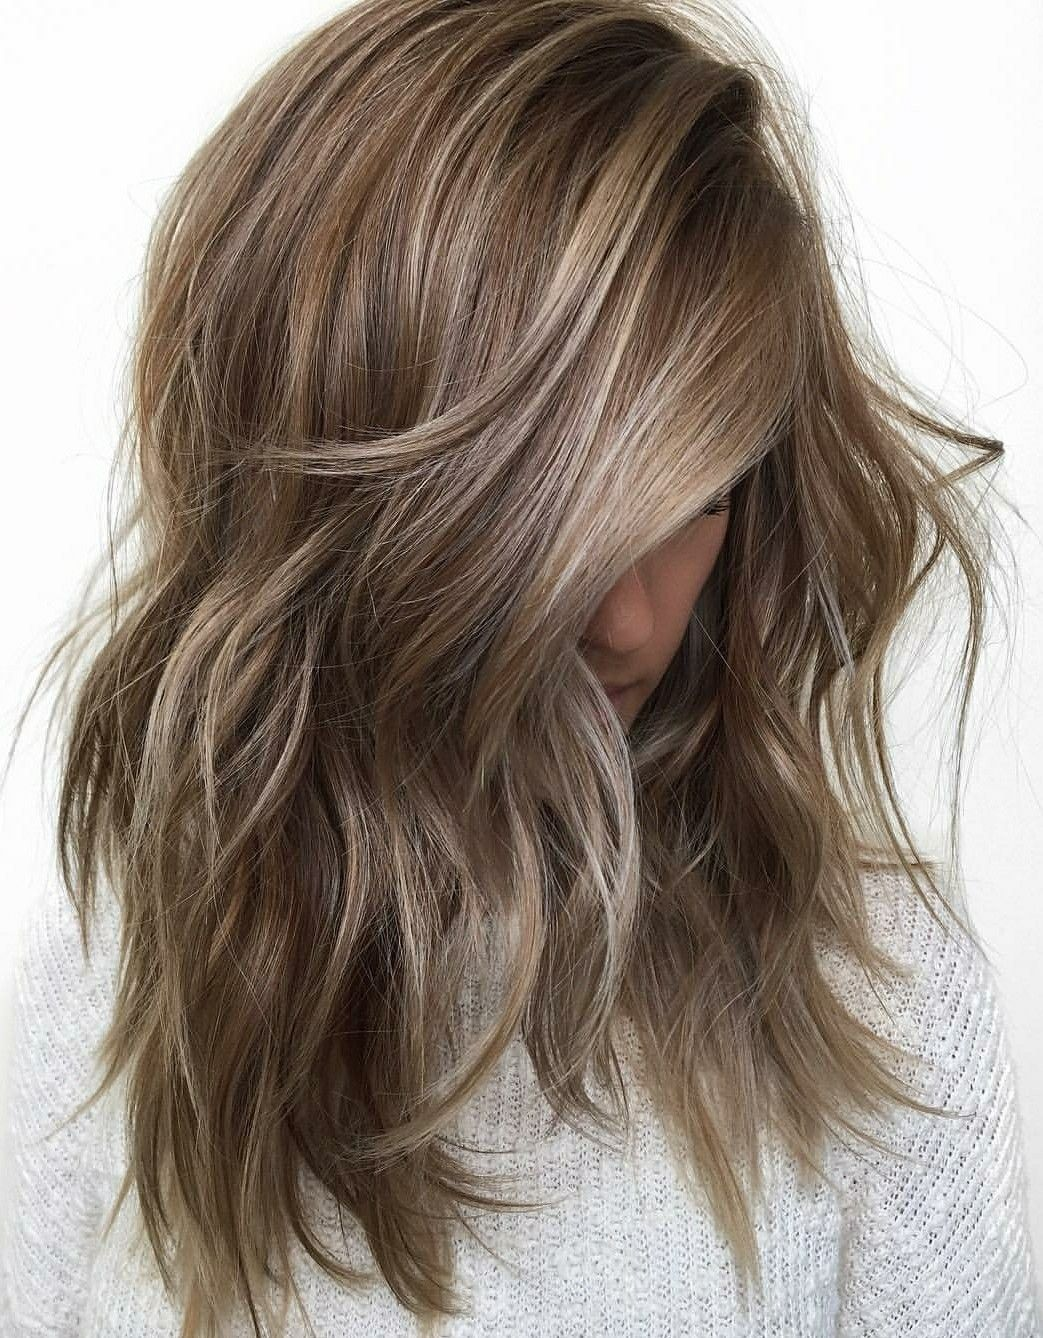 I added the direct link of the source to this beautiful bronde